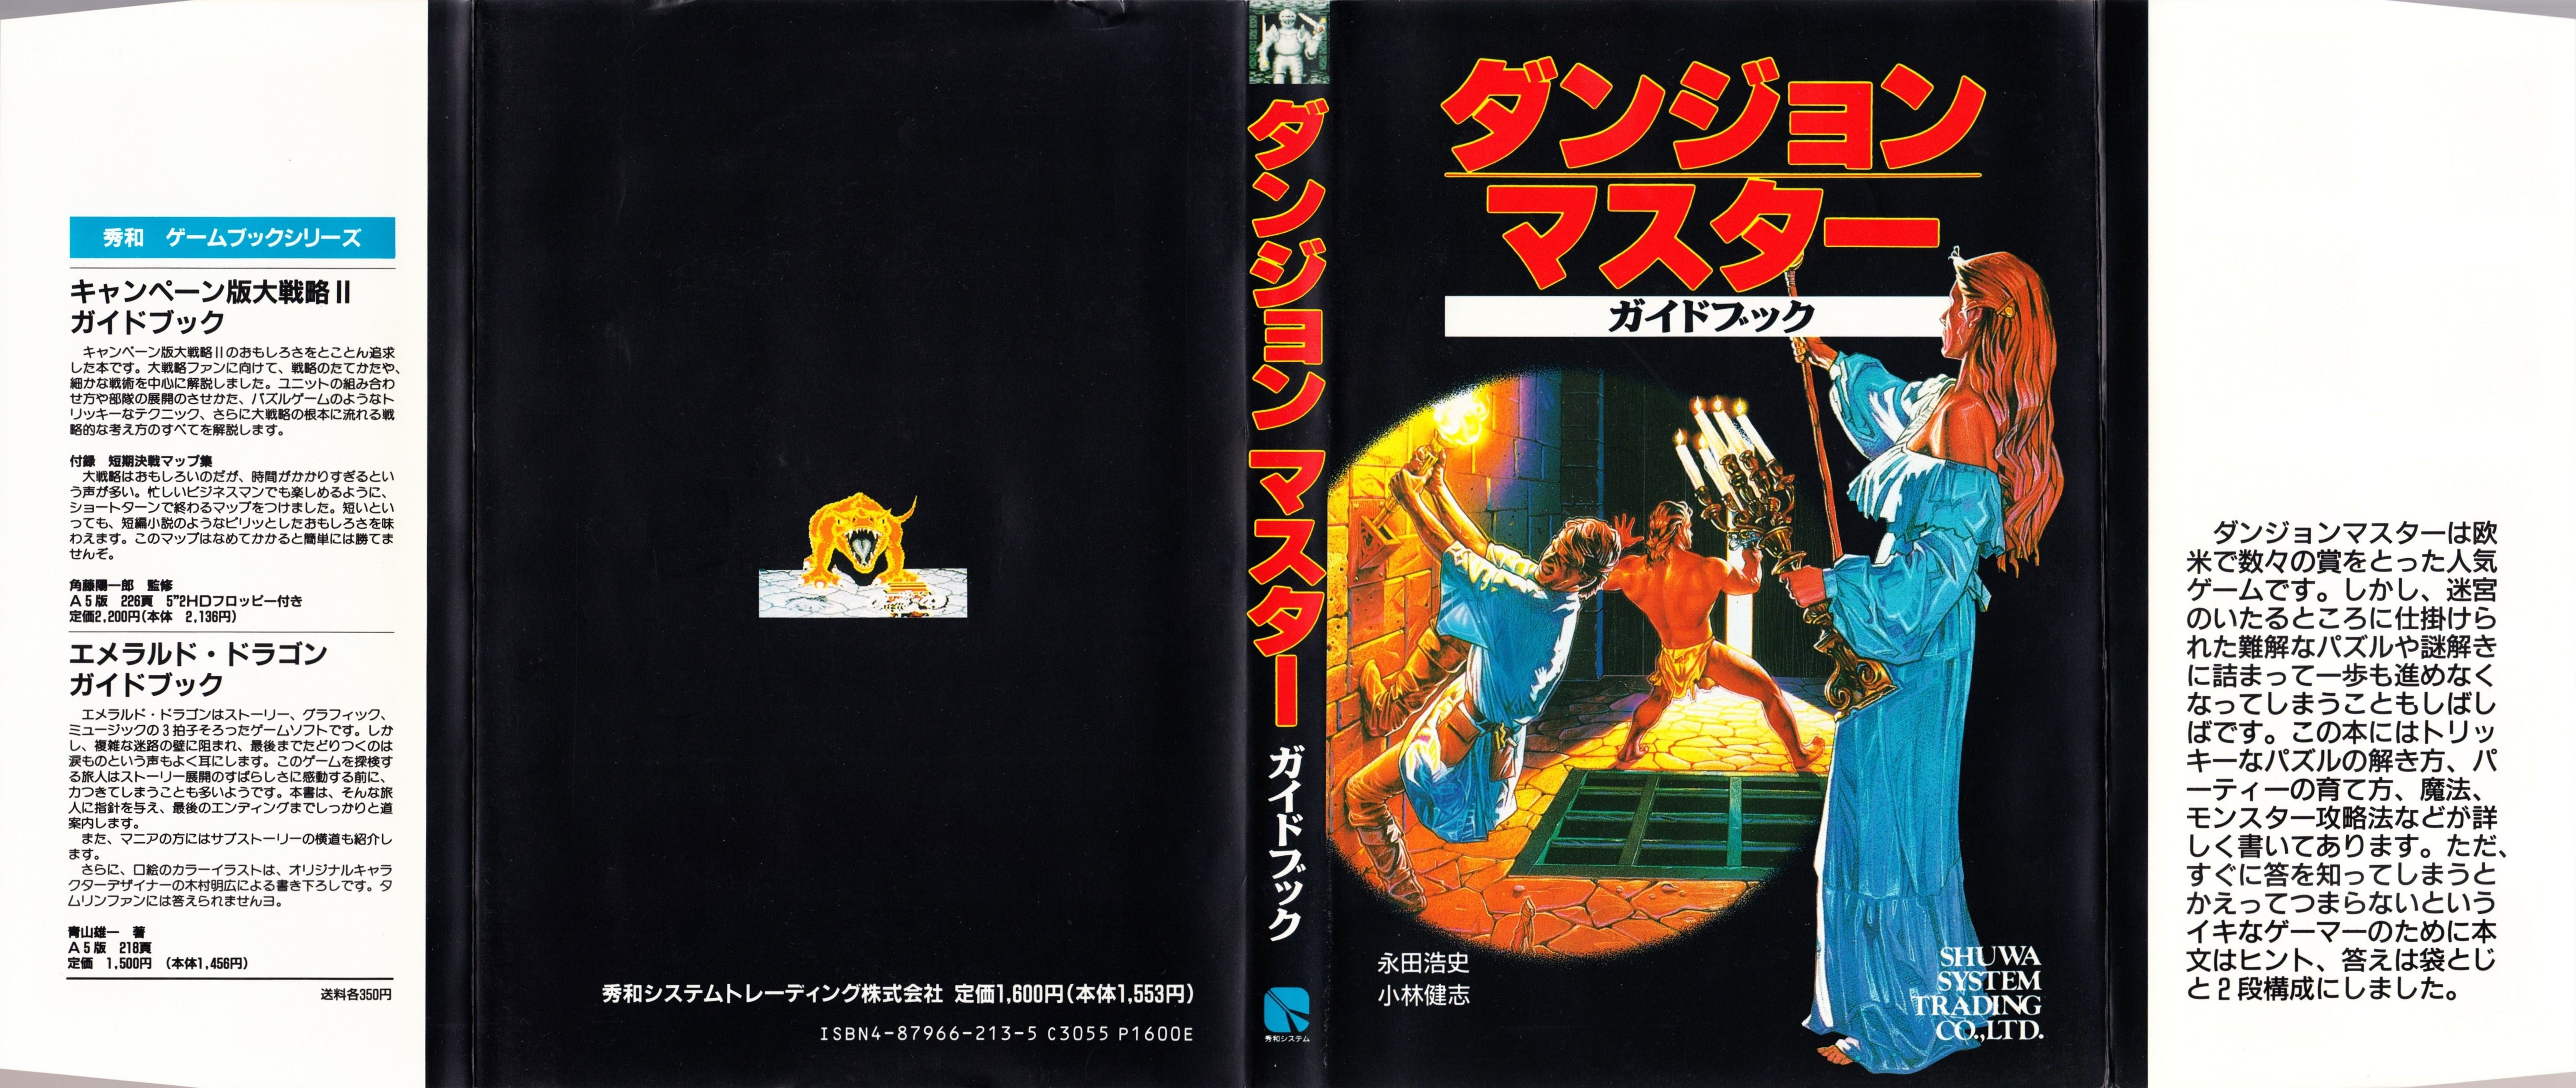 Hint Book - Dungeon Master Guide Book - JP - Dust Jacket - Front - Scan